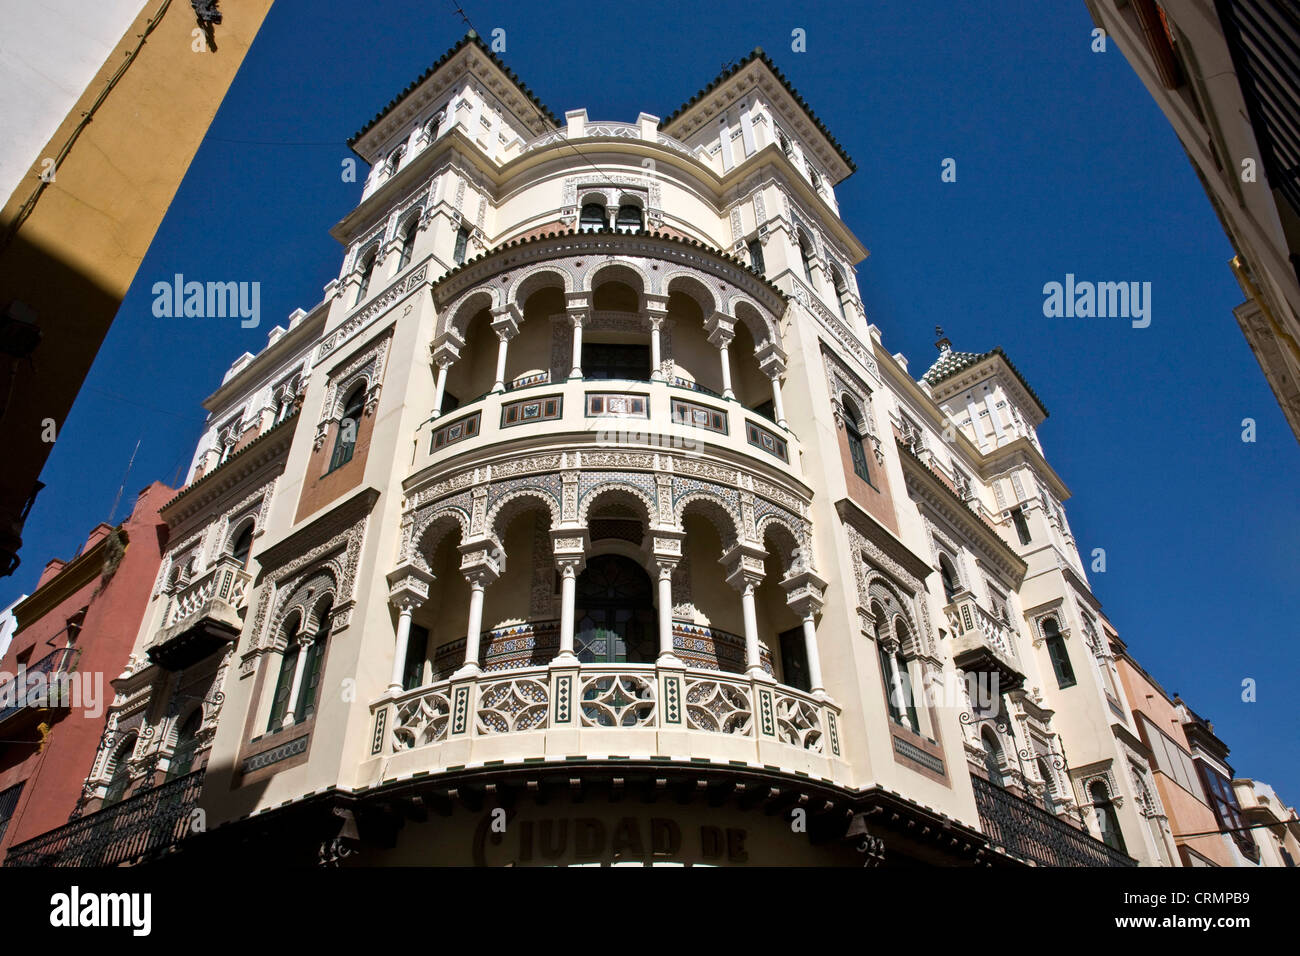 Europa Spain  Andalusia Seville architecture - Stock Image